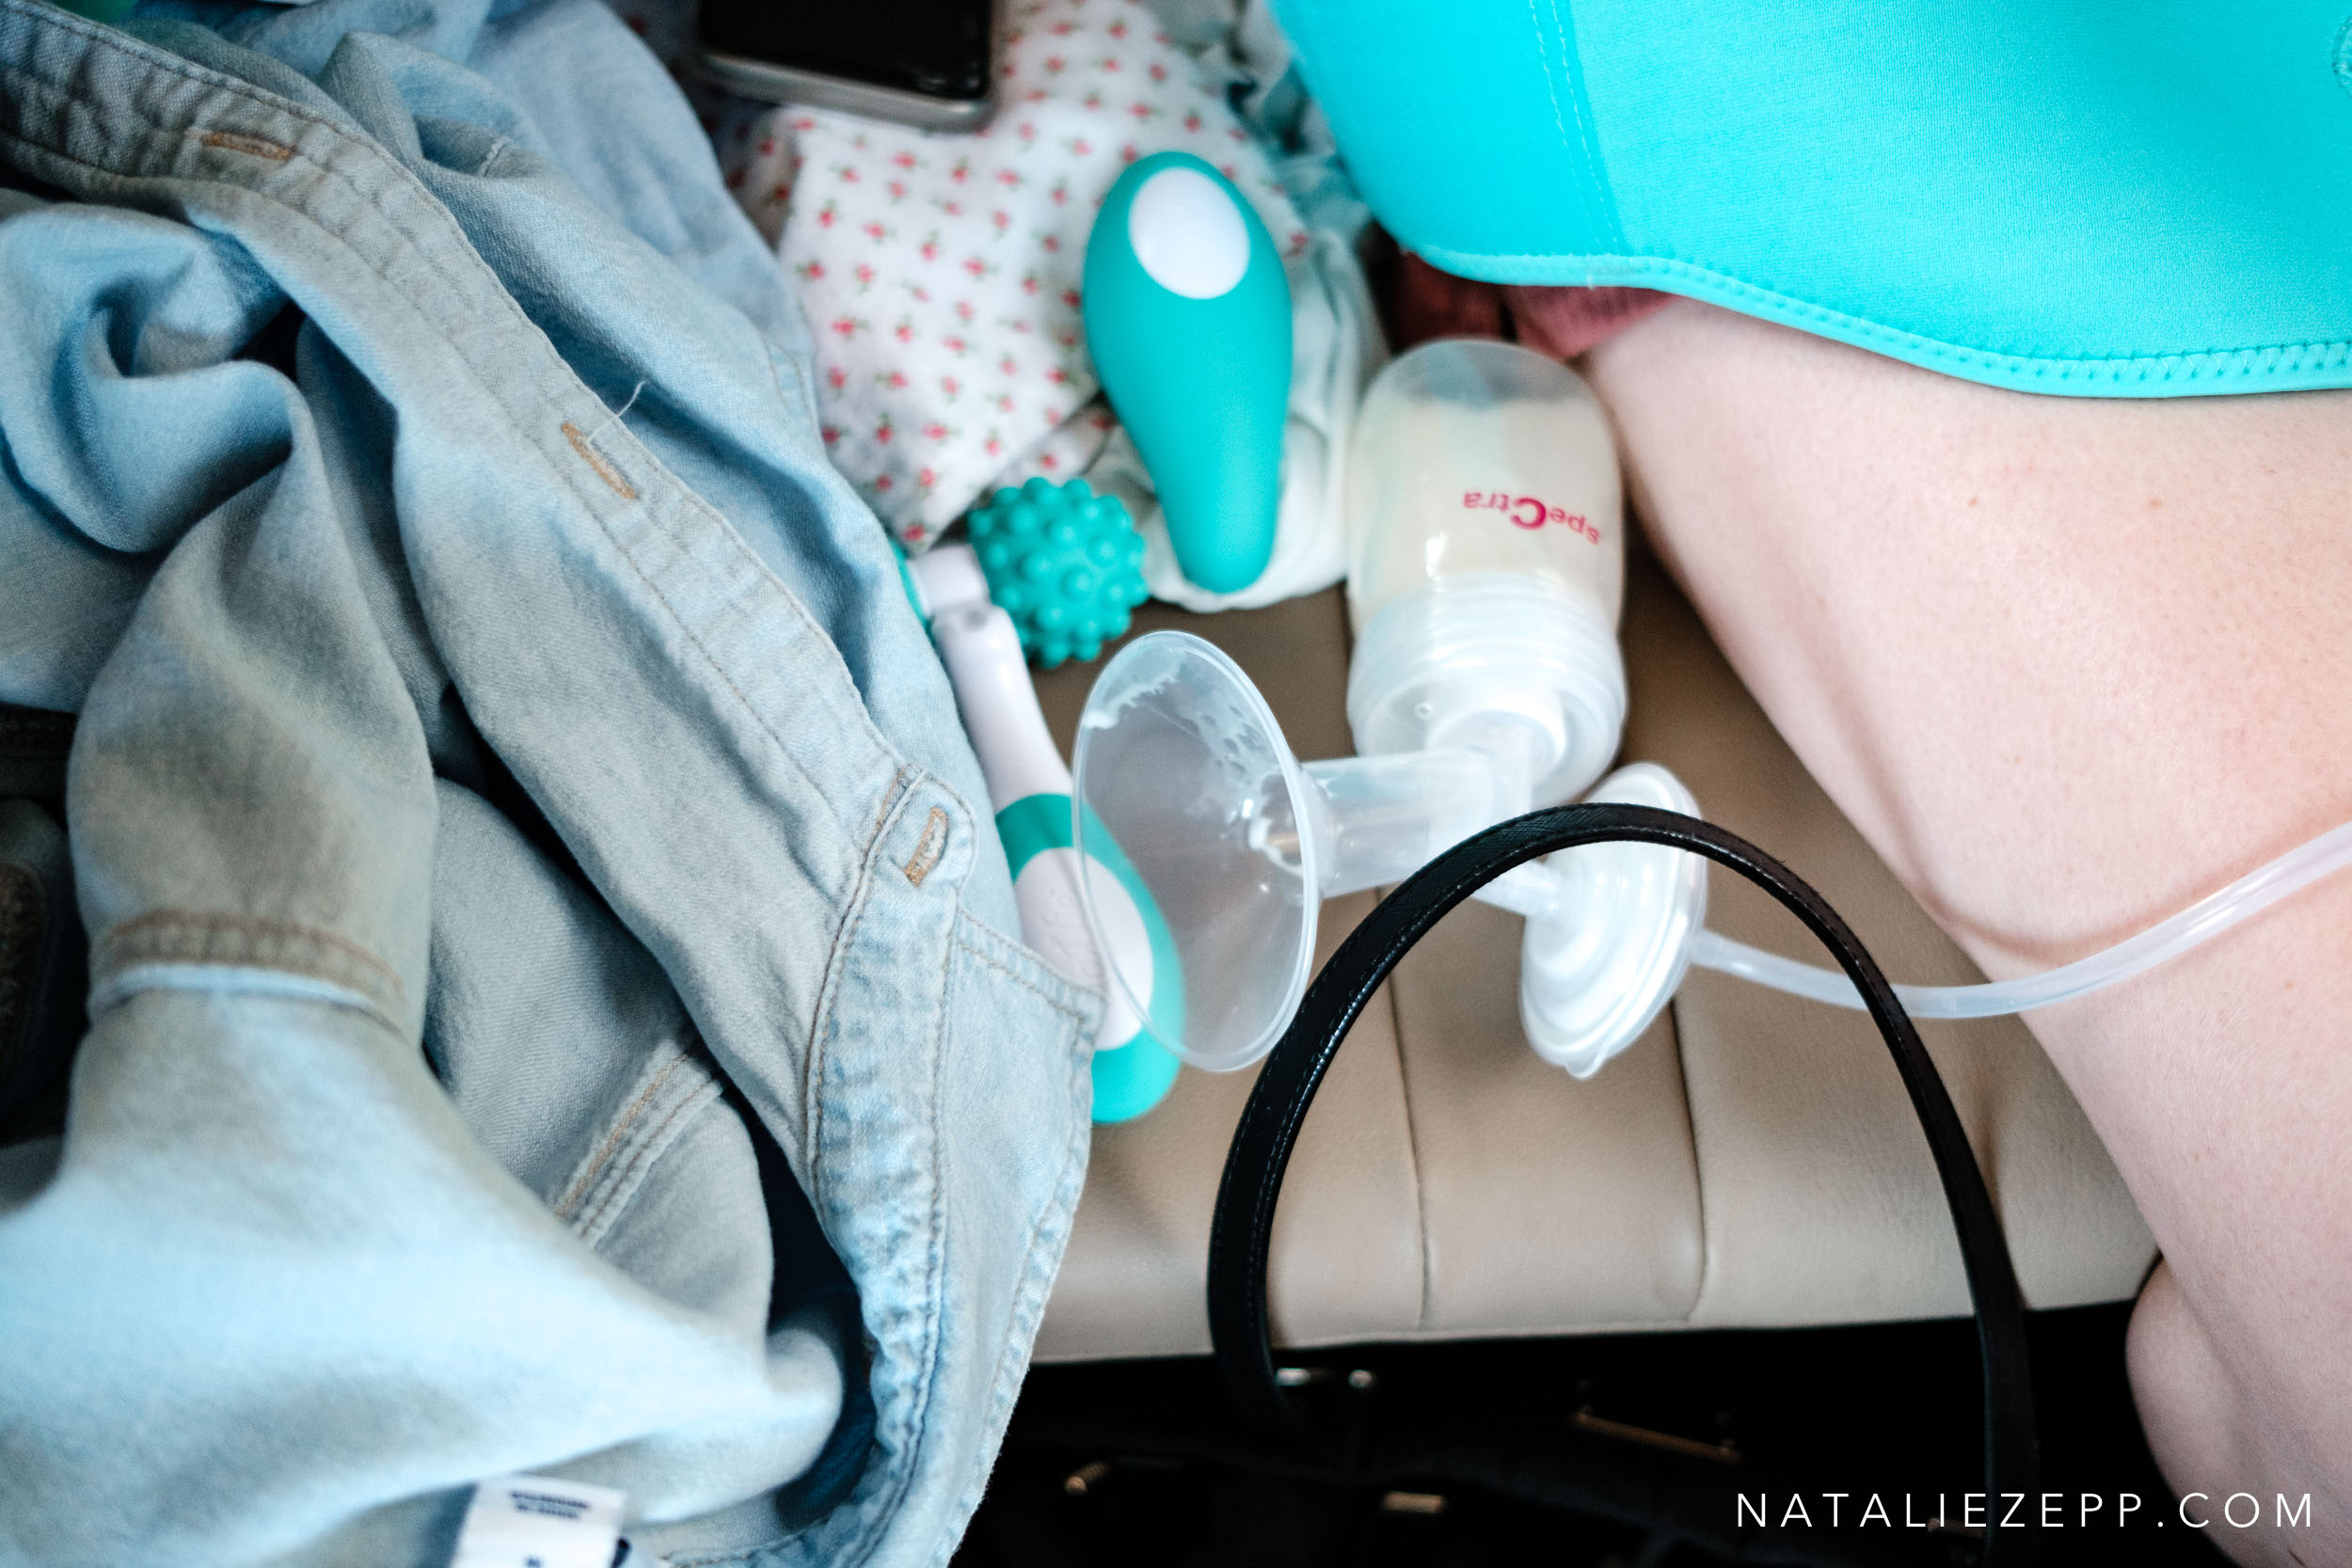 spectra-breastpump-review